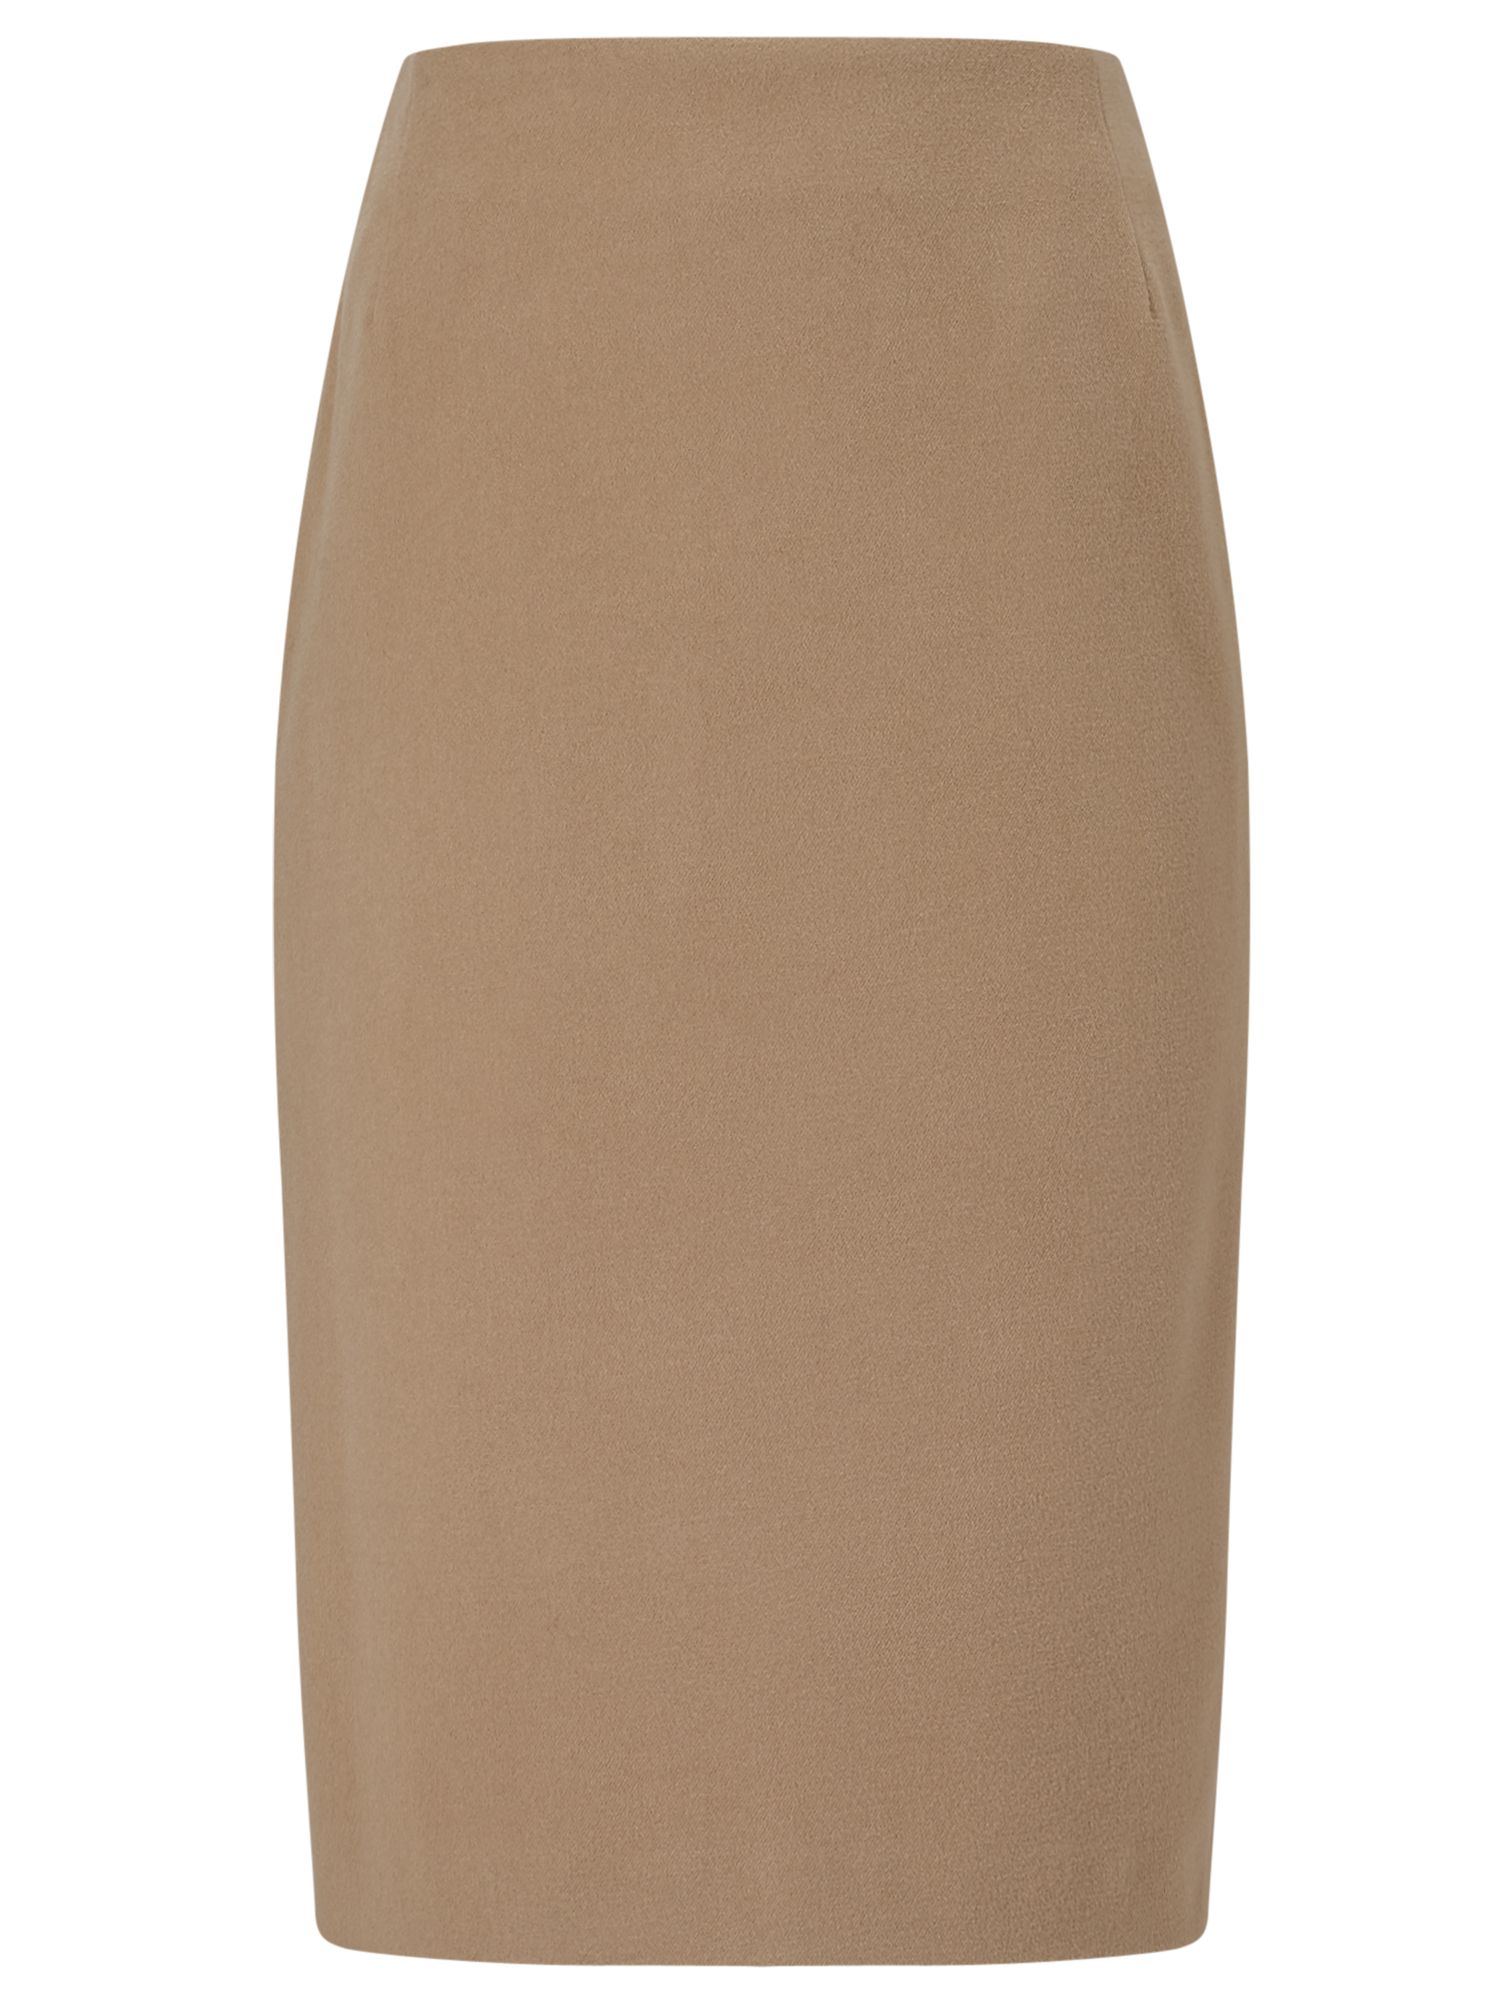 Eastex Velour Pencil Skirt, Brown